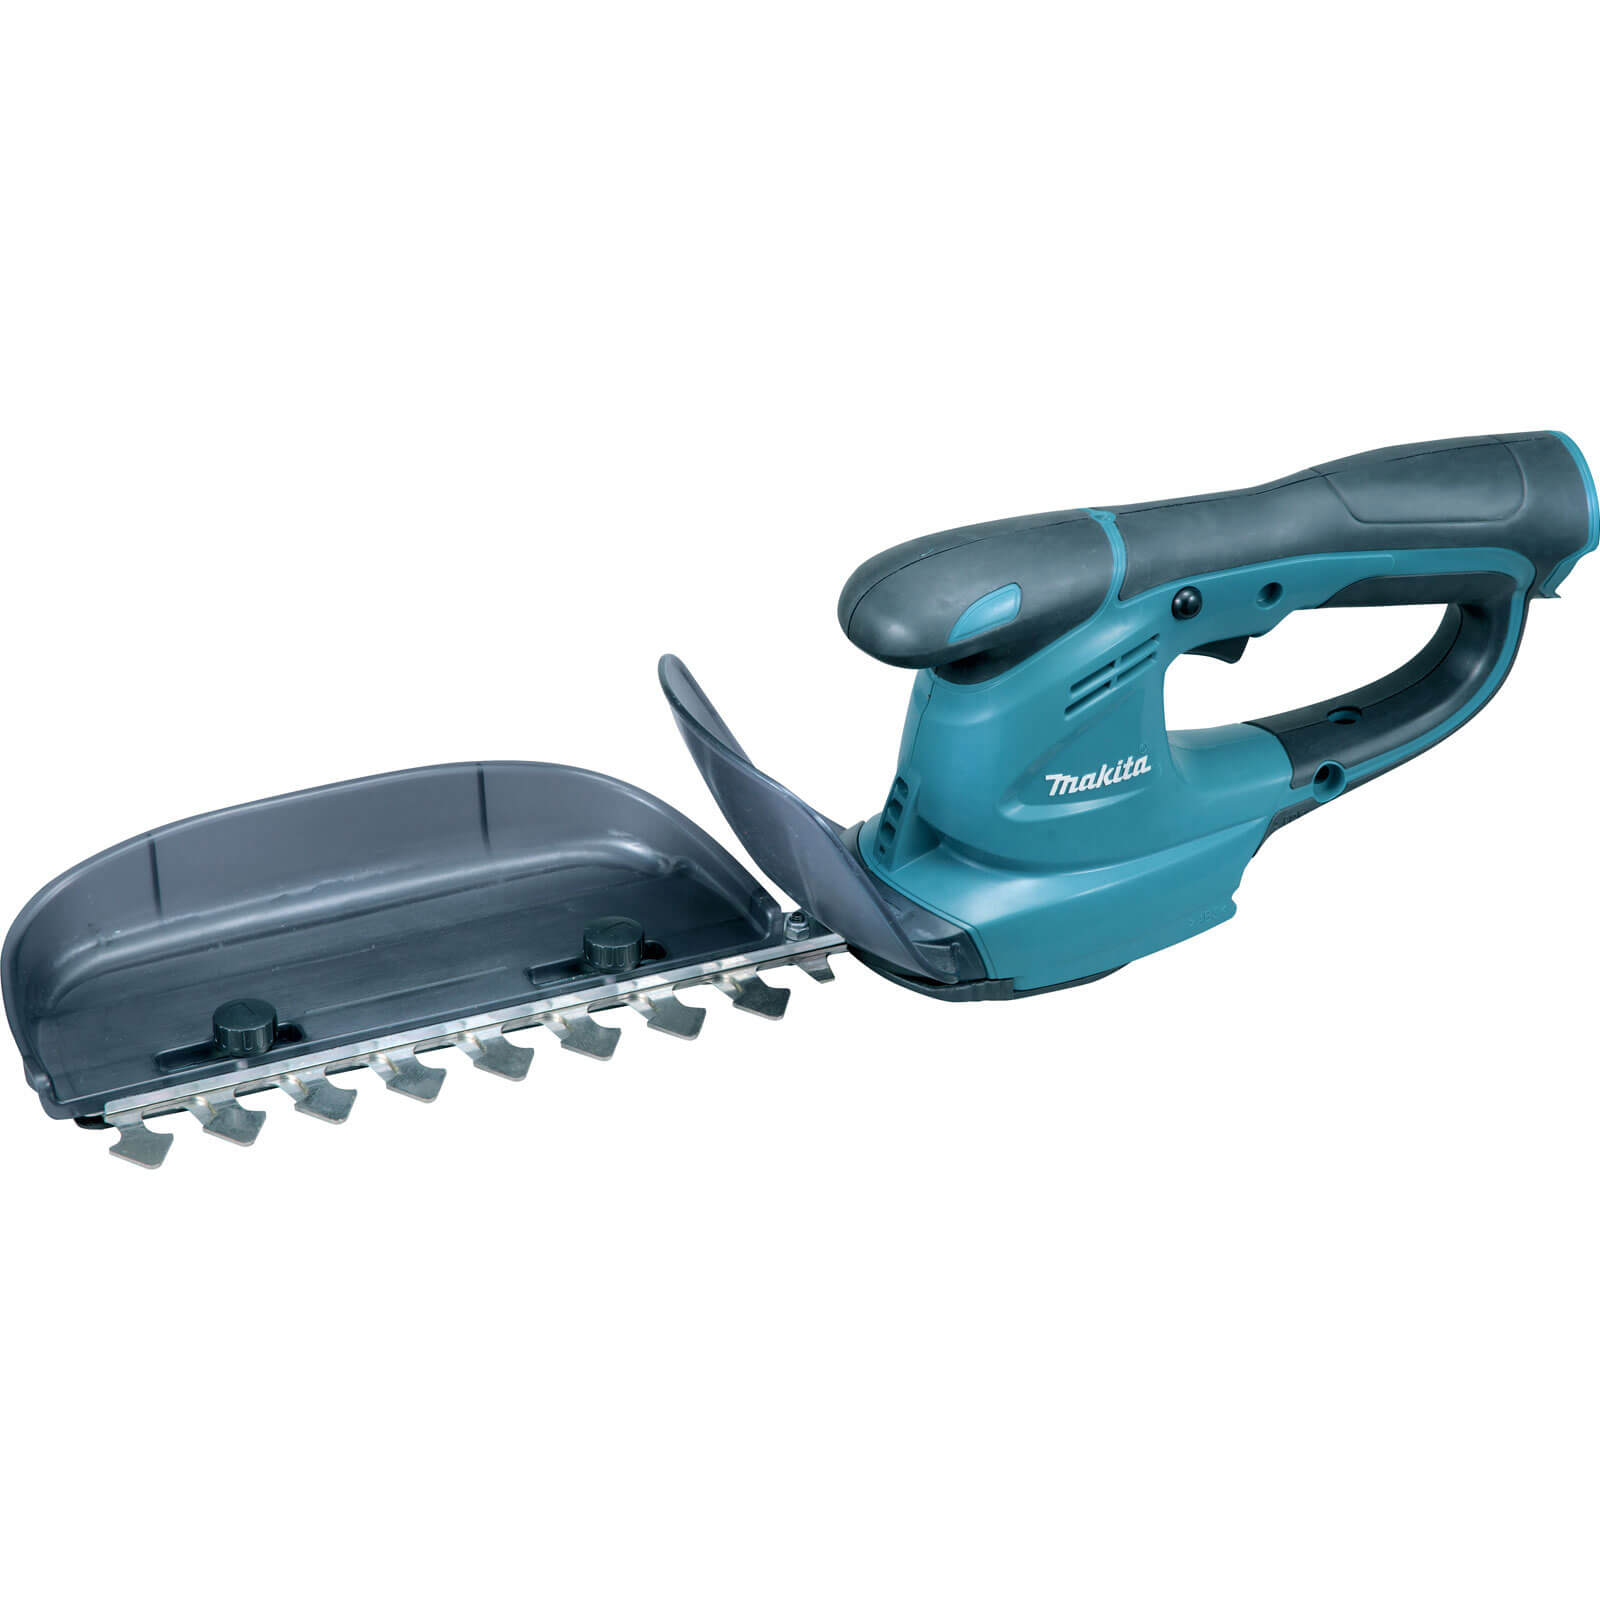 Makita UH200D 10.8V Cordless Hedgetrimmer No Batteries No Charger No Case